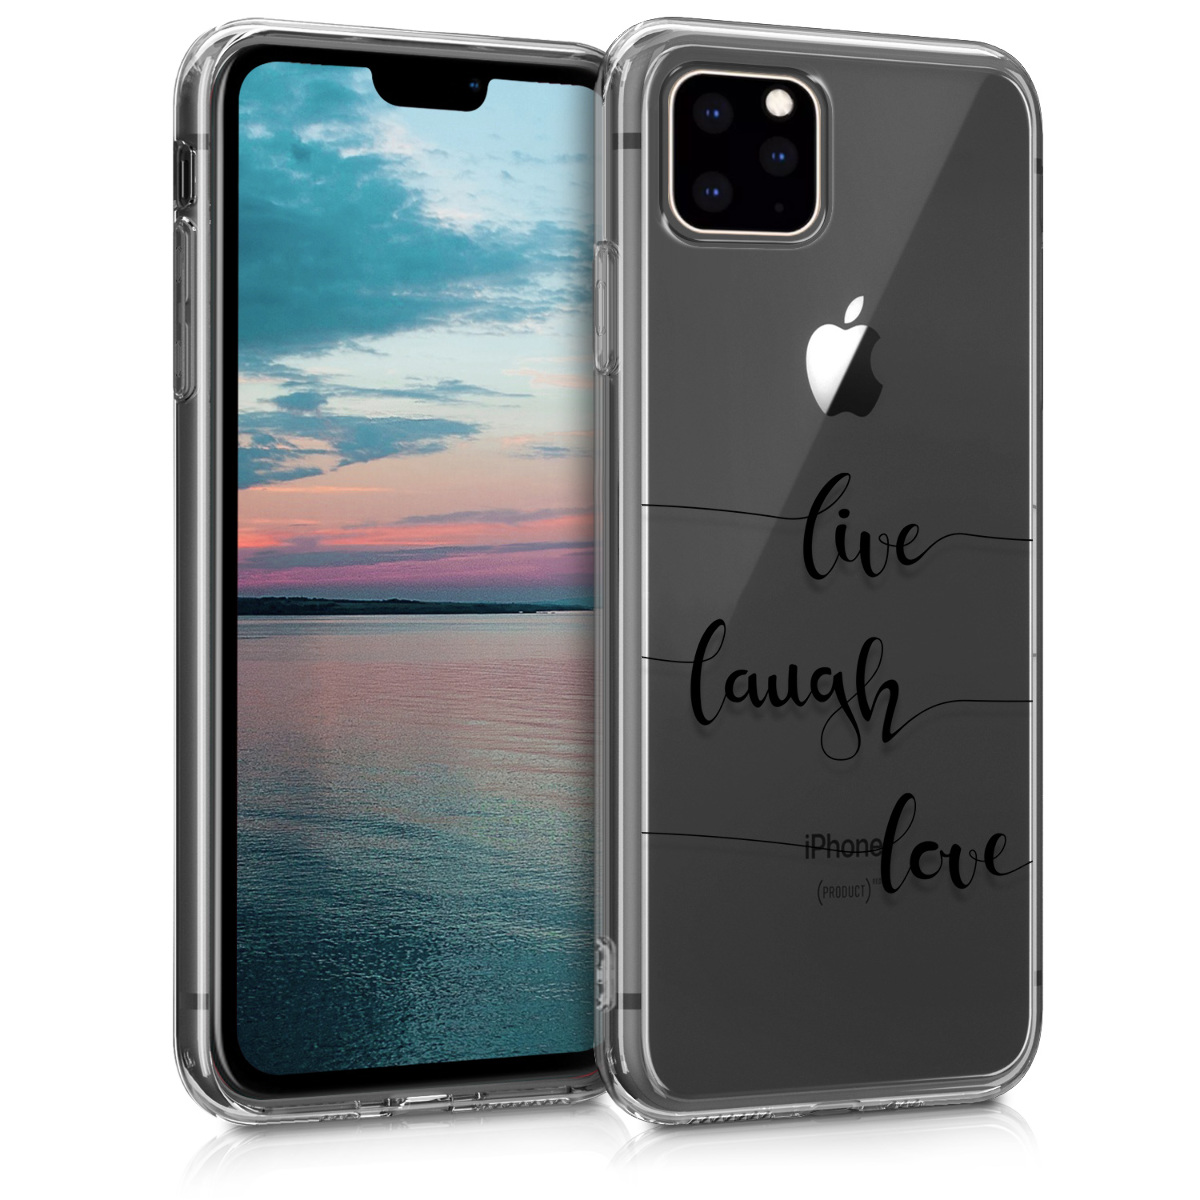 KW Θήκη Σιλικόνης iPhone 11 Pro - Black / Transparent (49792.03)